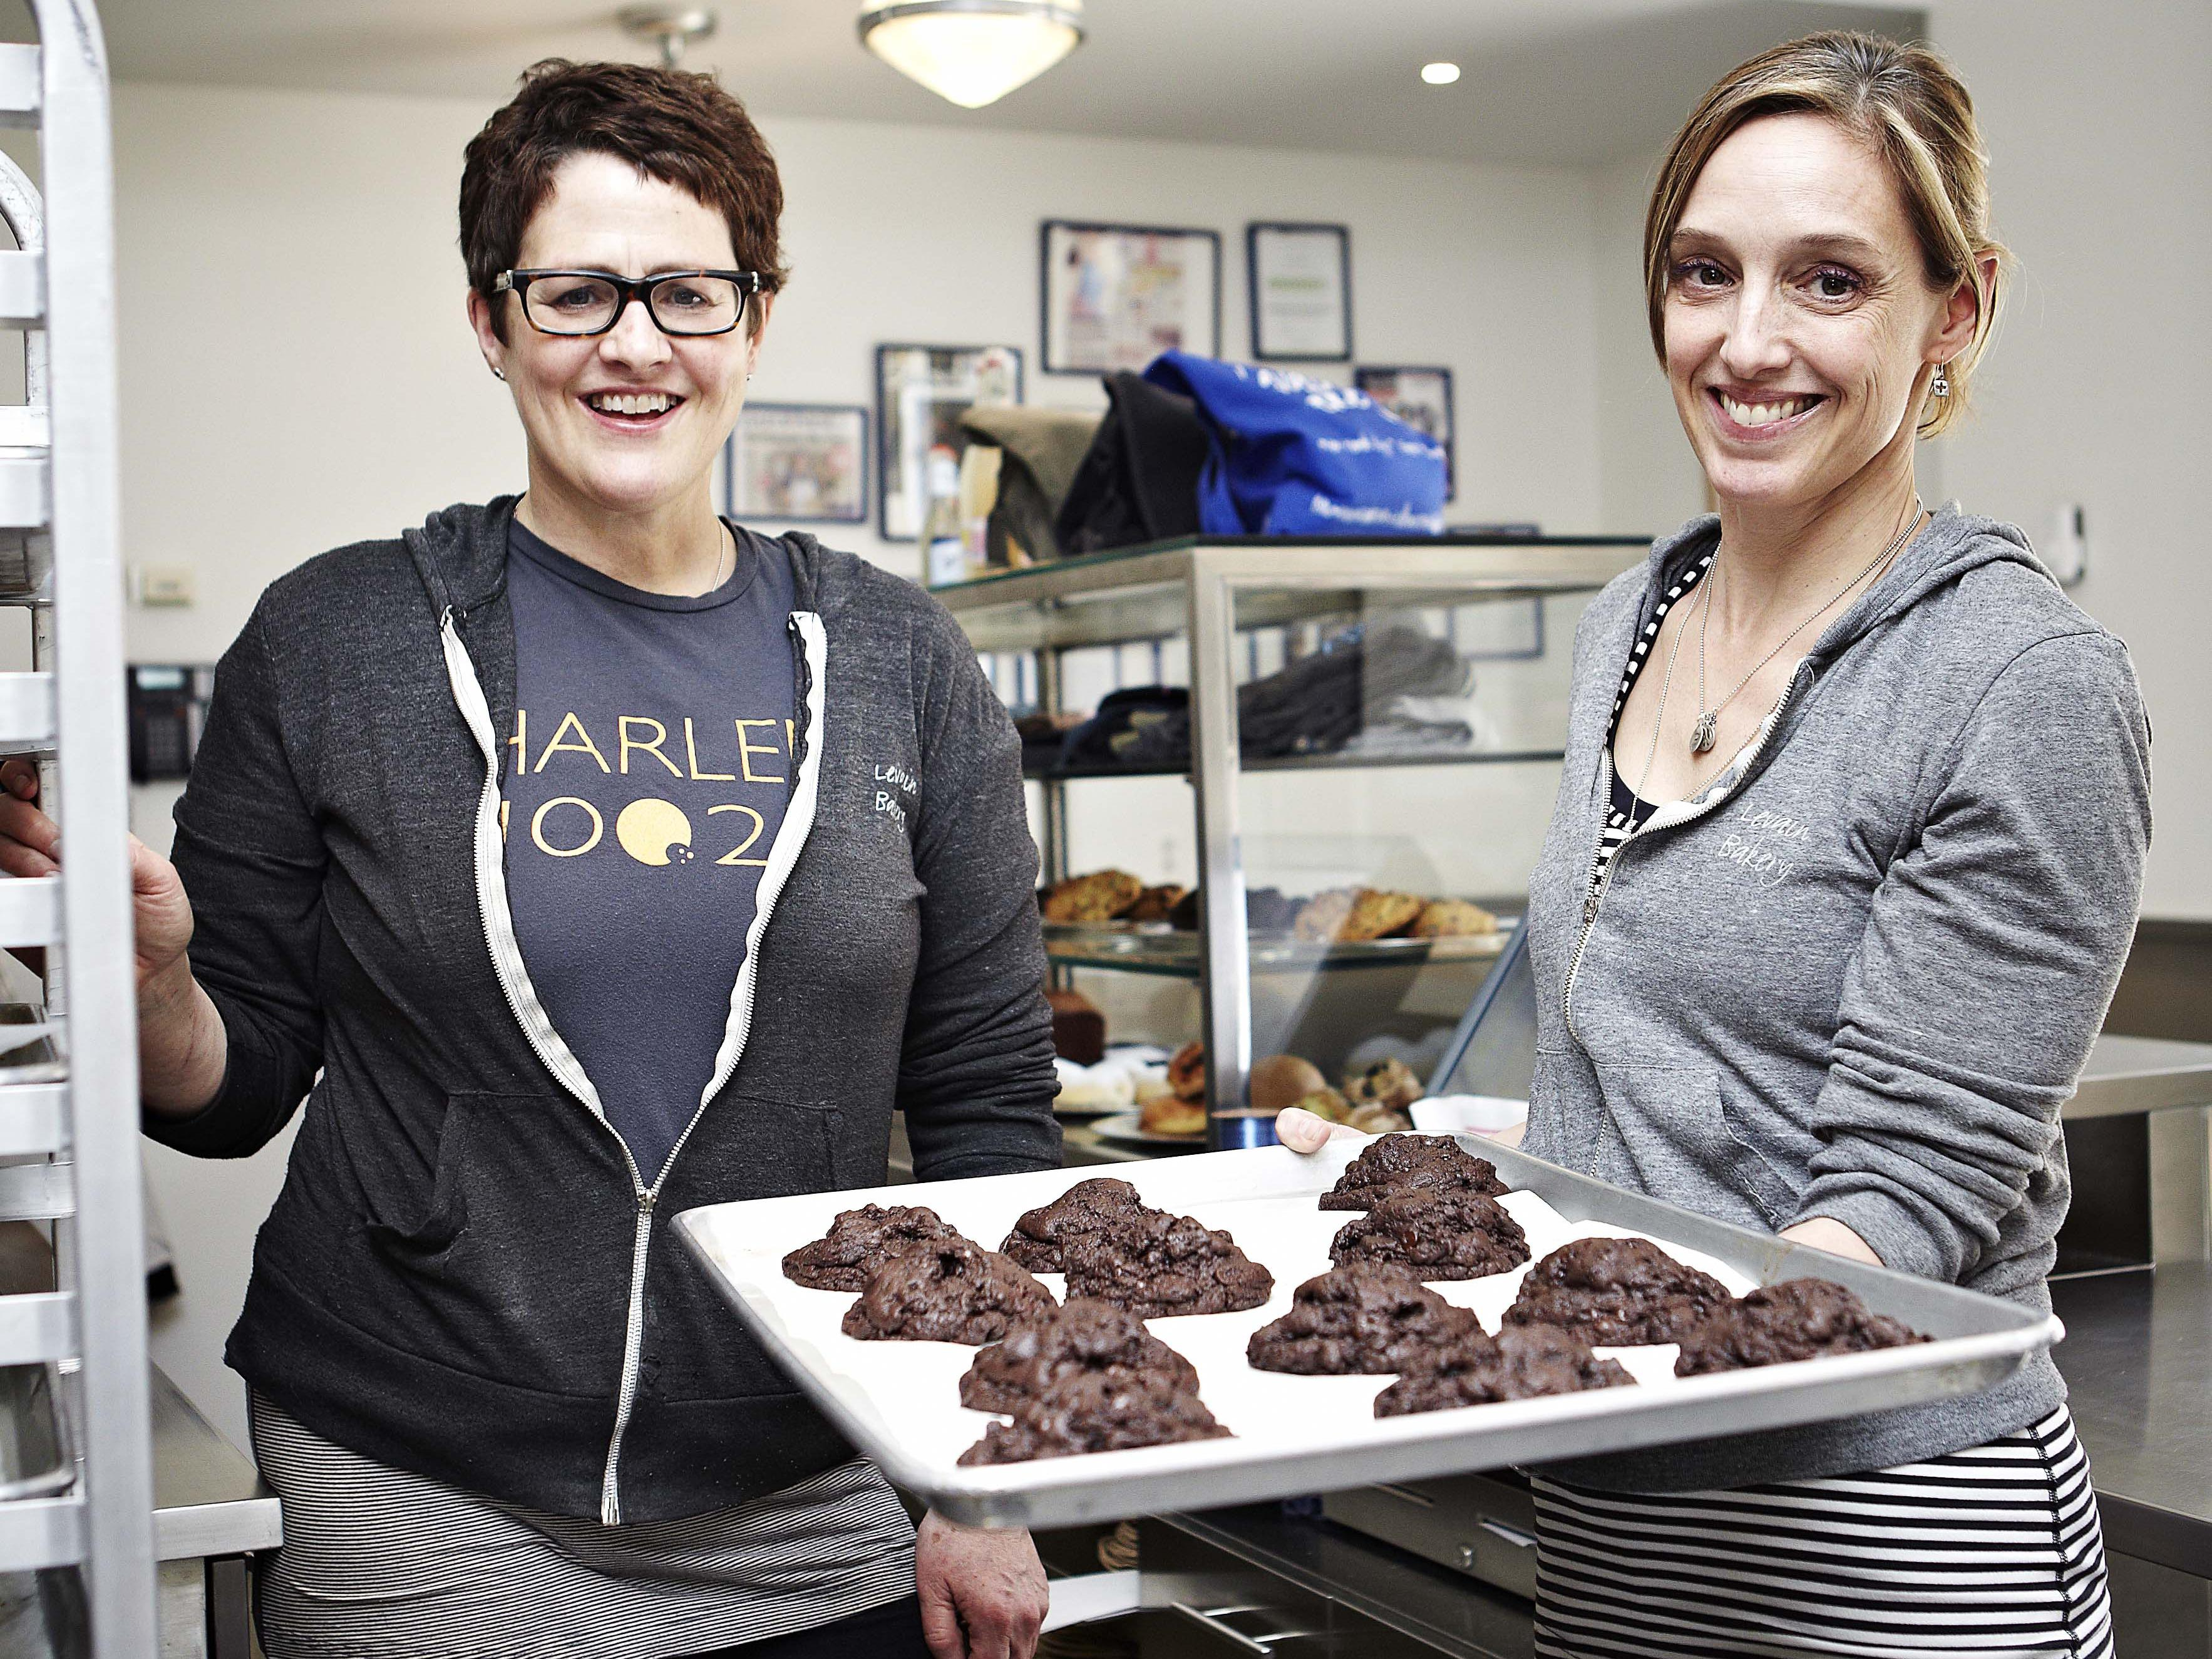 Connie McDonald (left) and Pam Weekes (right) started Levain in 1997.